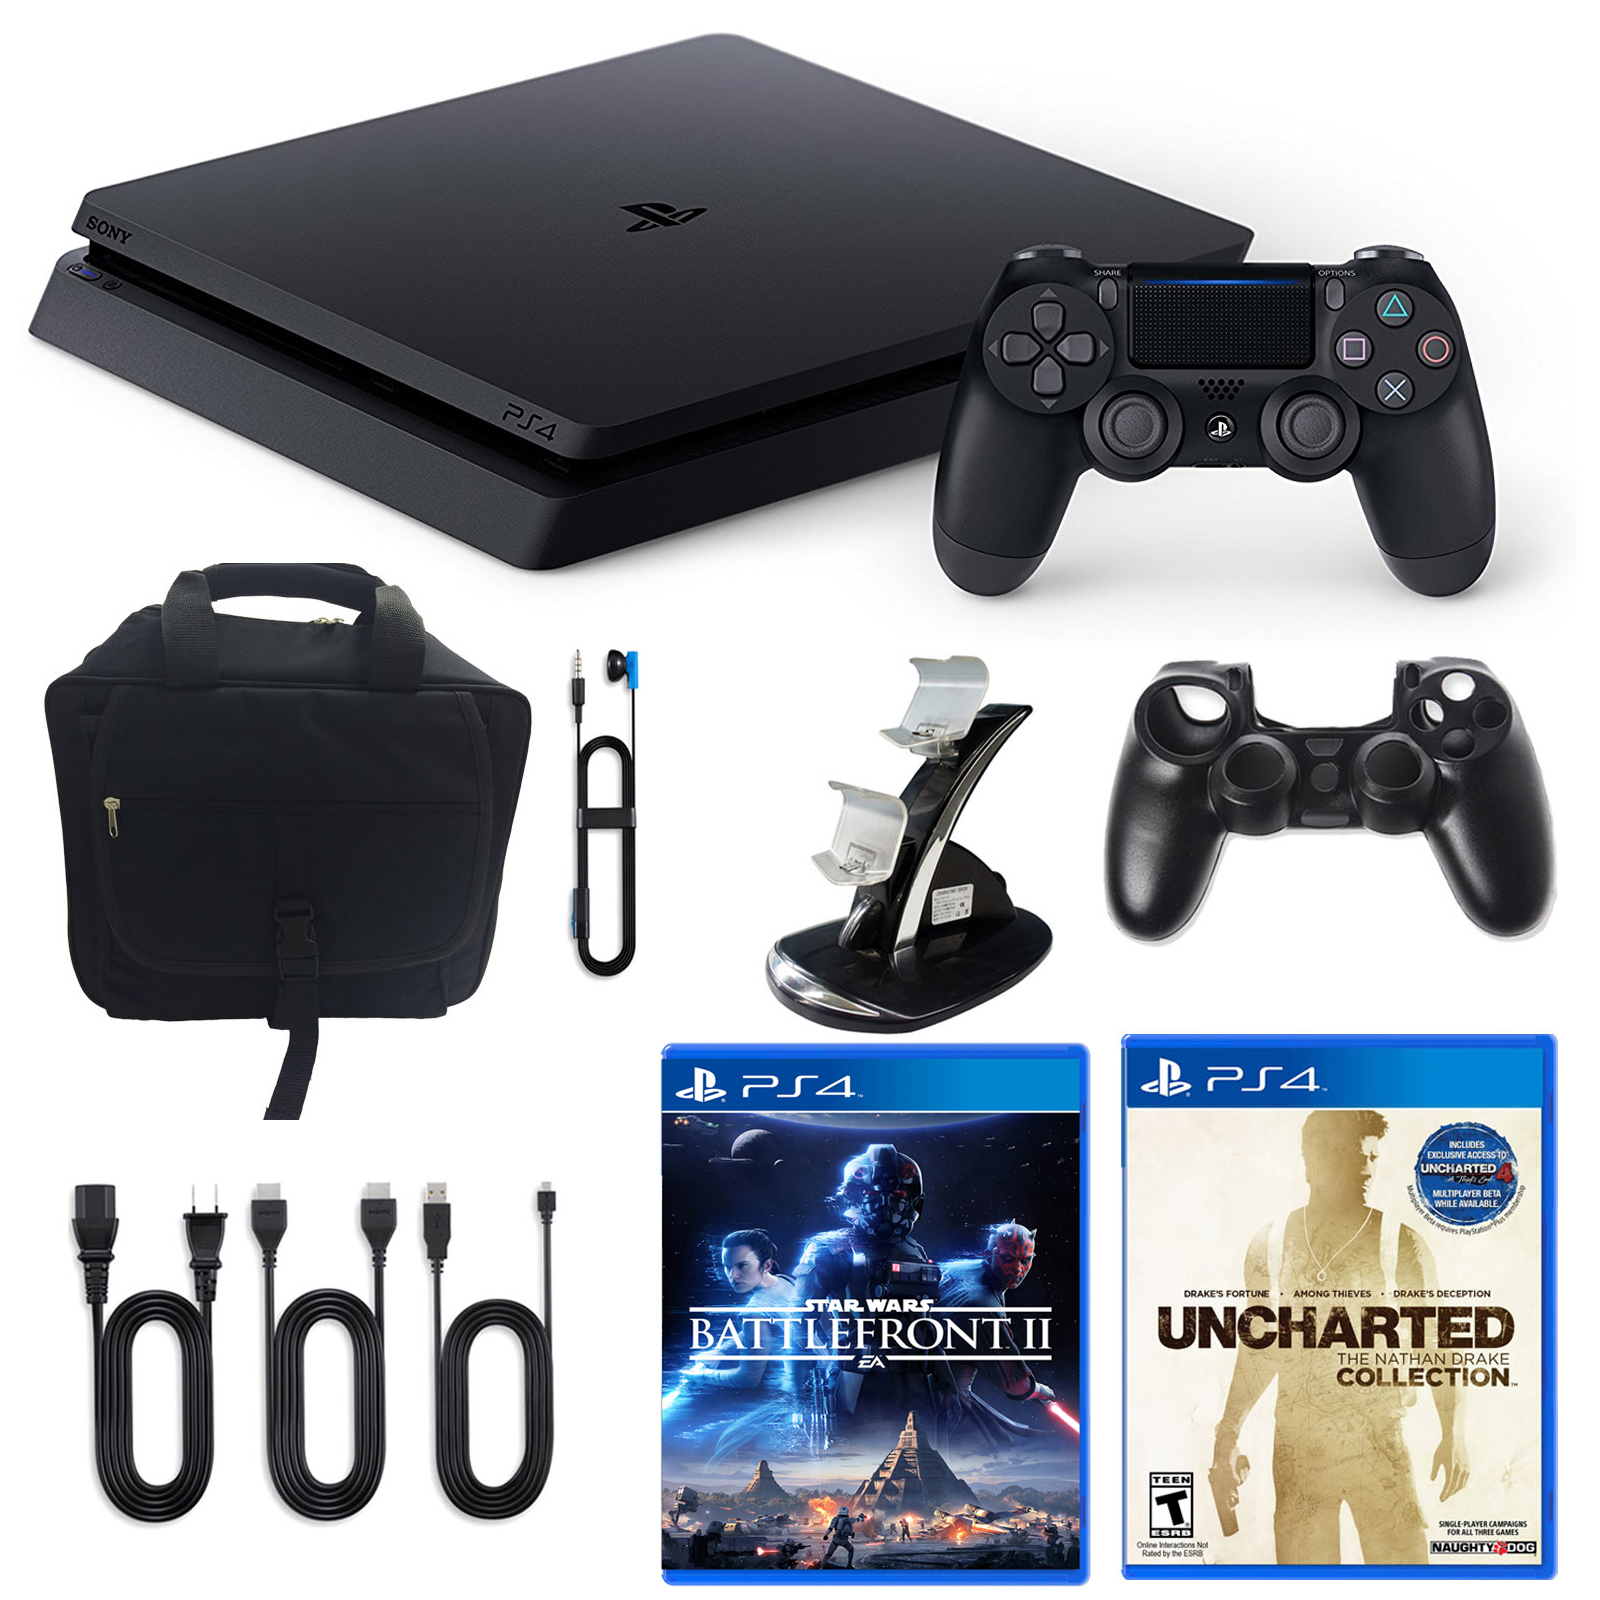 Playstation 4 1TB Limited Edition Star Wars Console with Nathan Drake Game and Accessories by PlayStation